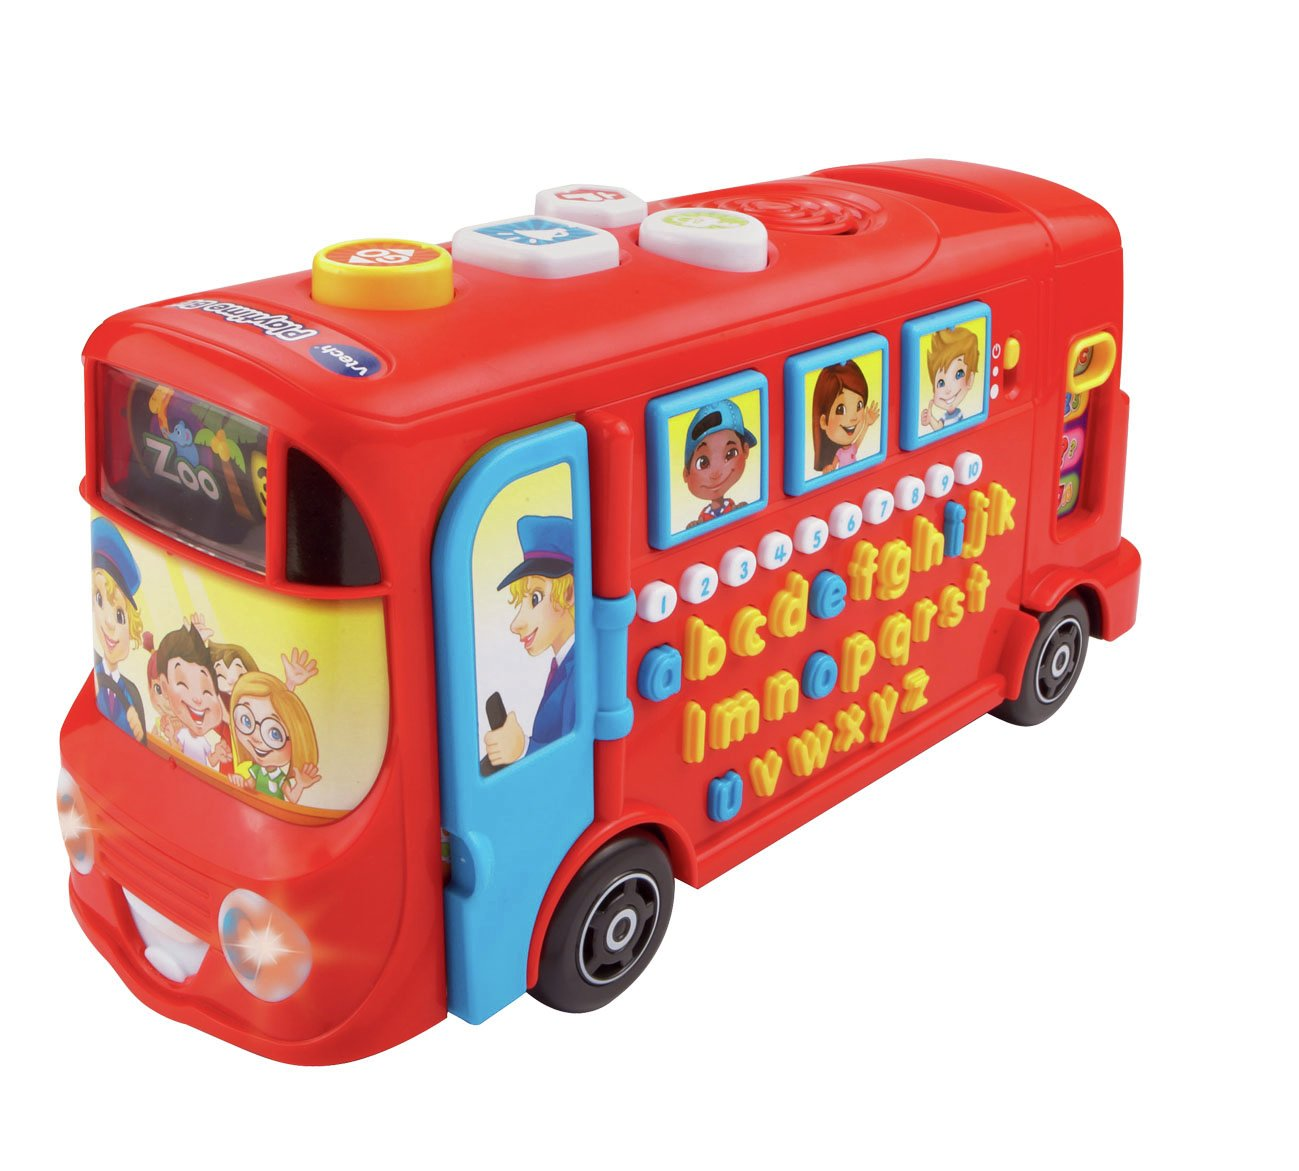 VTech Playtime Bus with Phonics from VTech